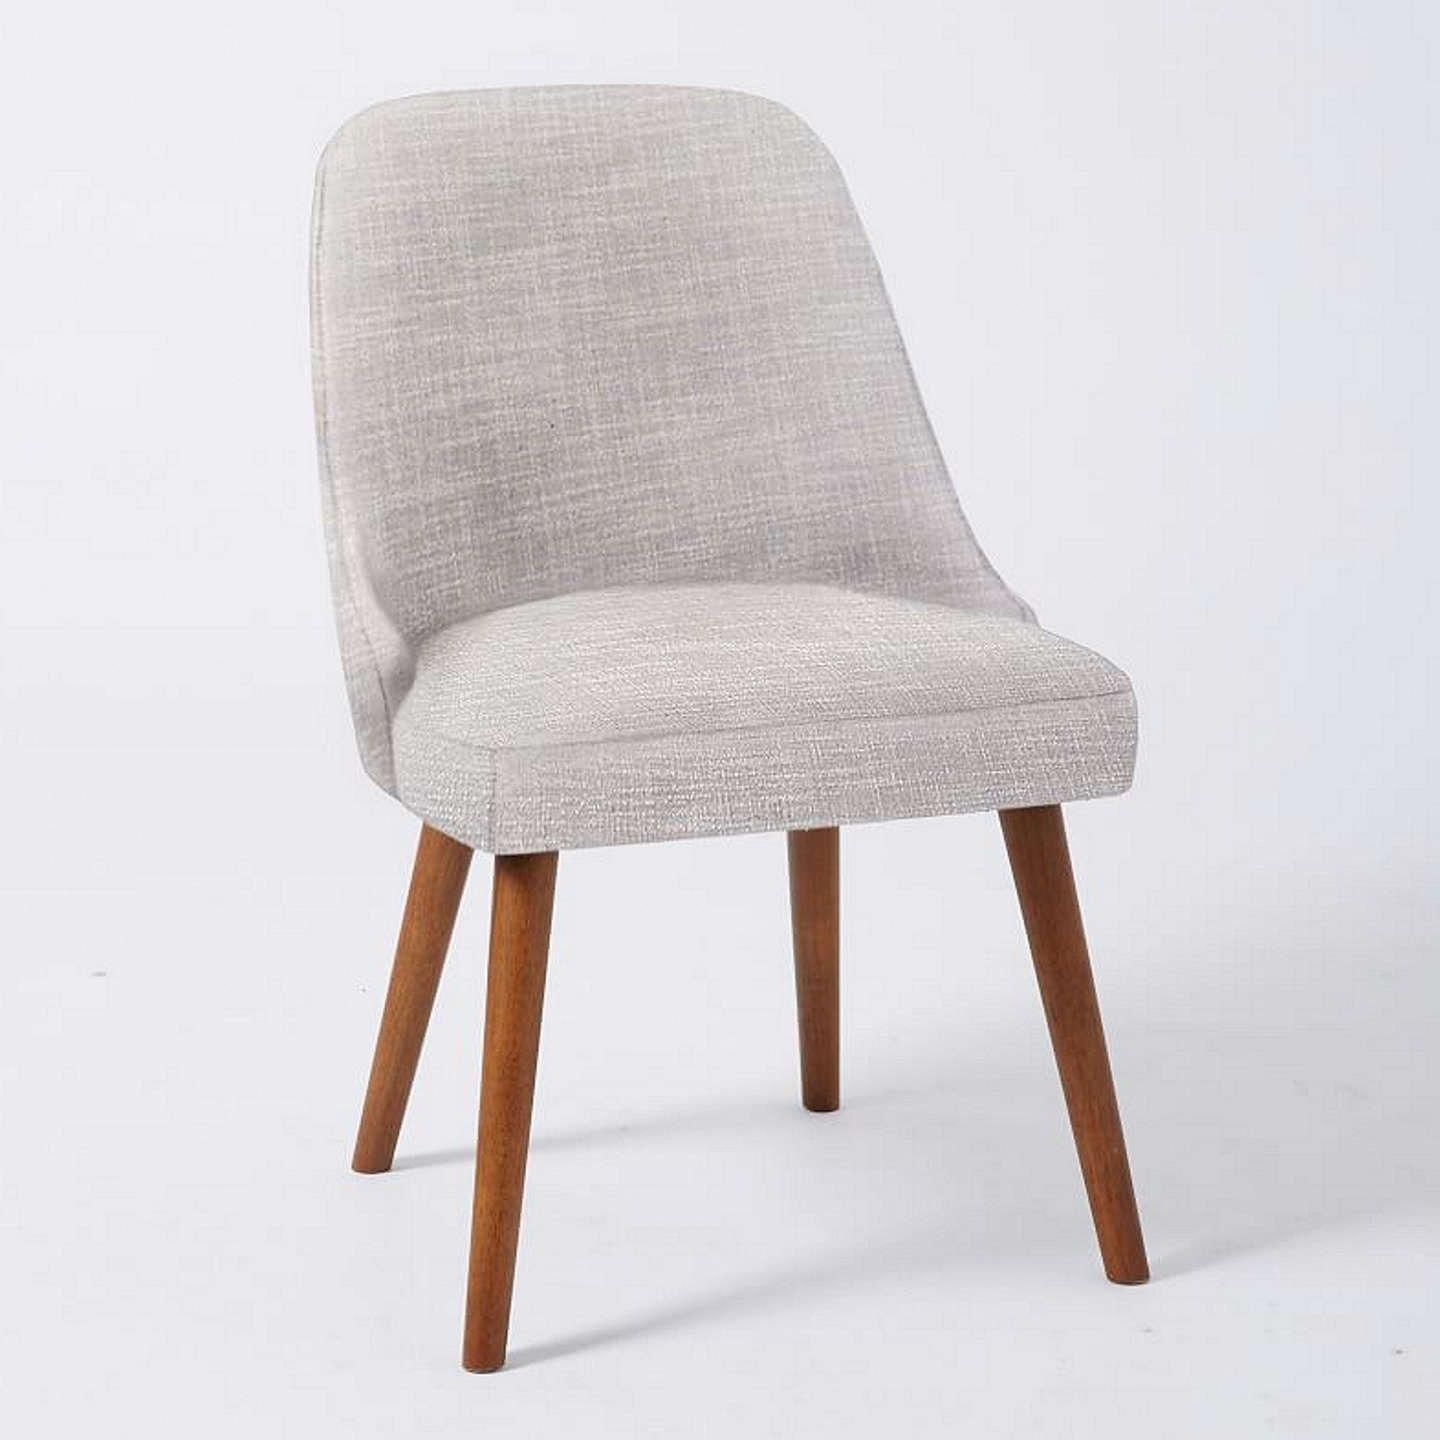 Saddle Office Chair West Elm Chairs Used Sale Buywest Online At Johnlewis Com Officechairsonline